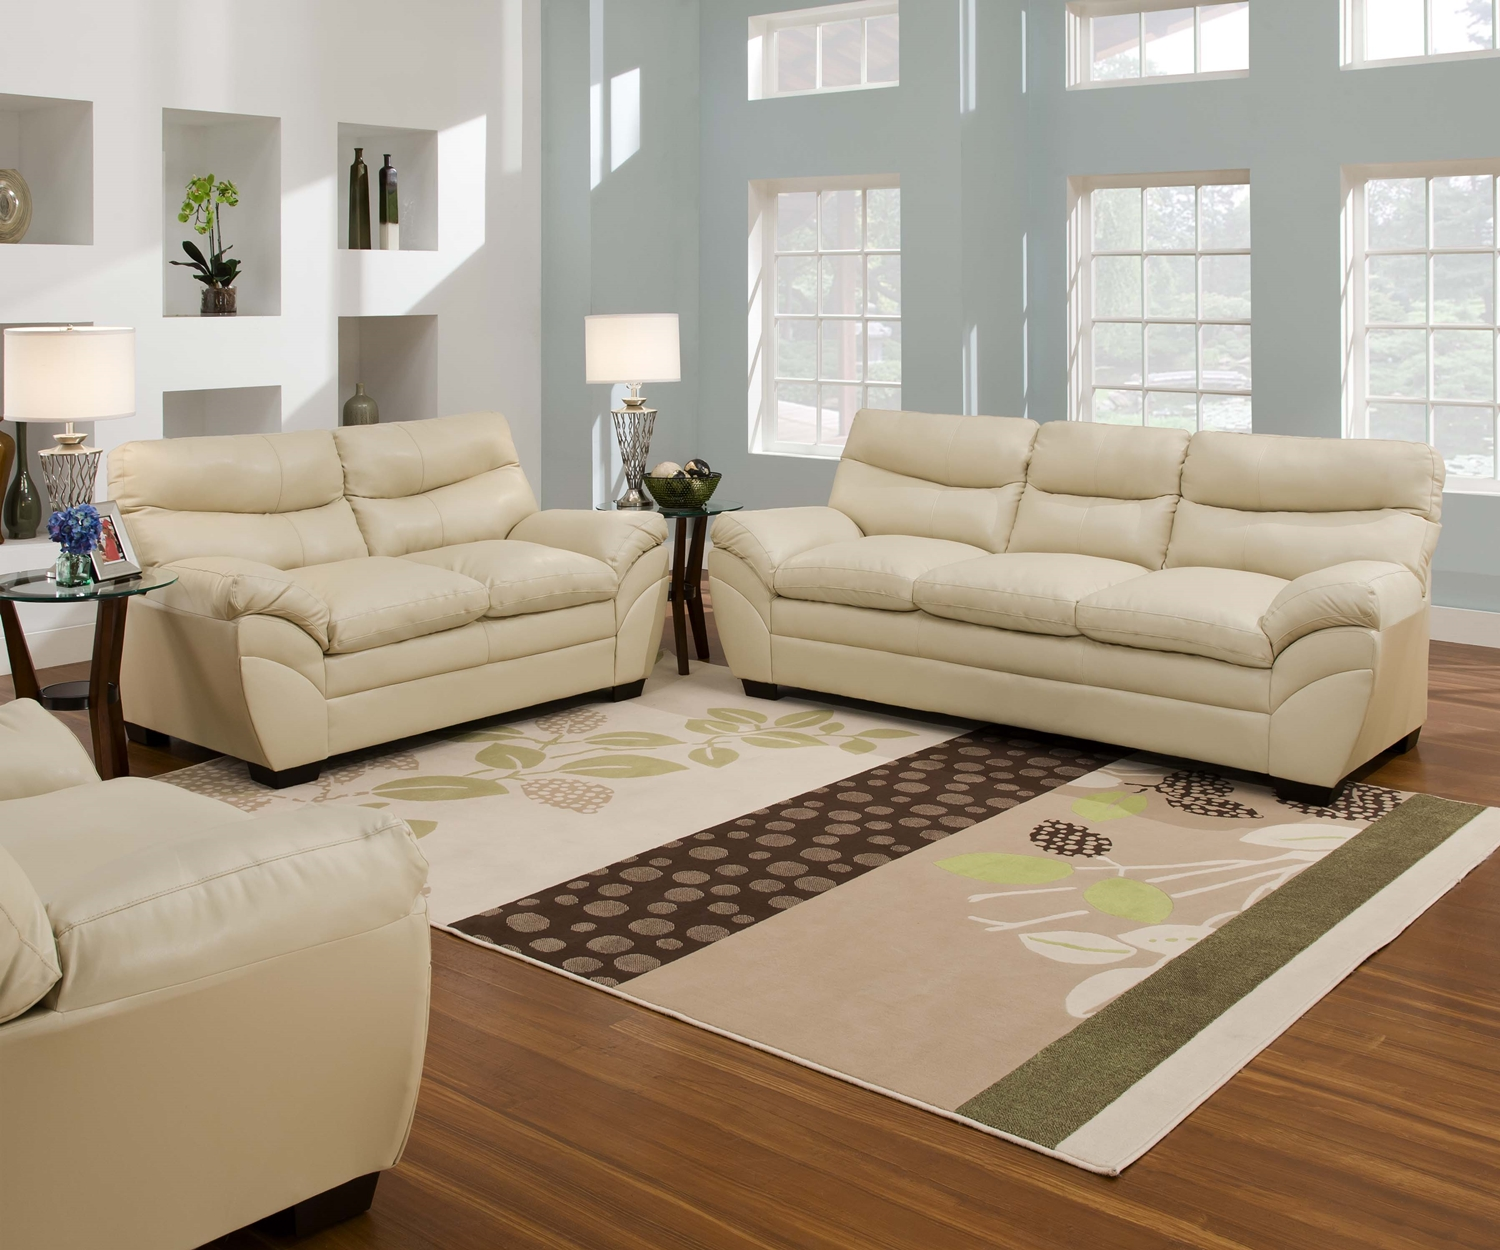 Cream living room furniture modern house - Living room furnature ...